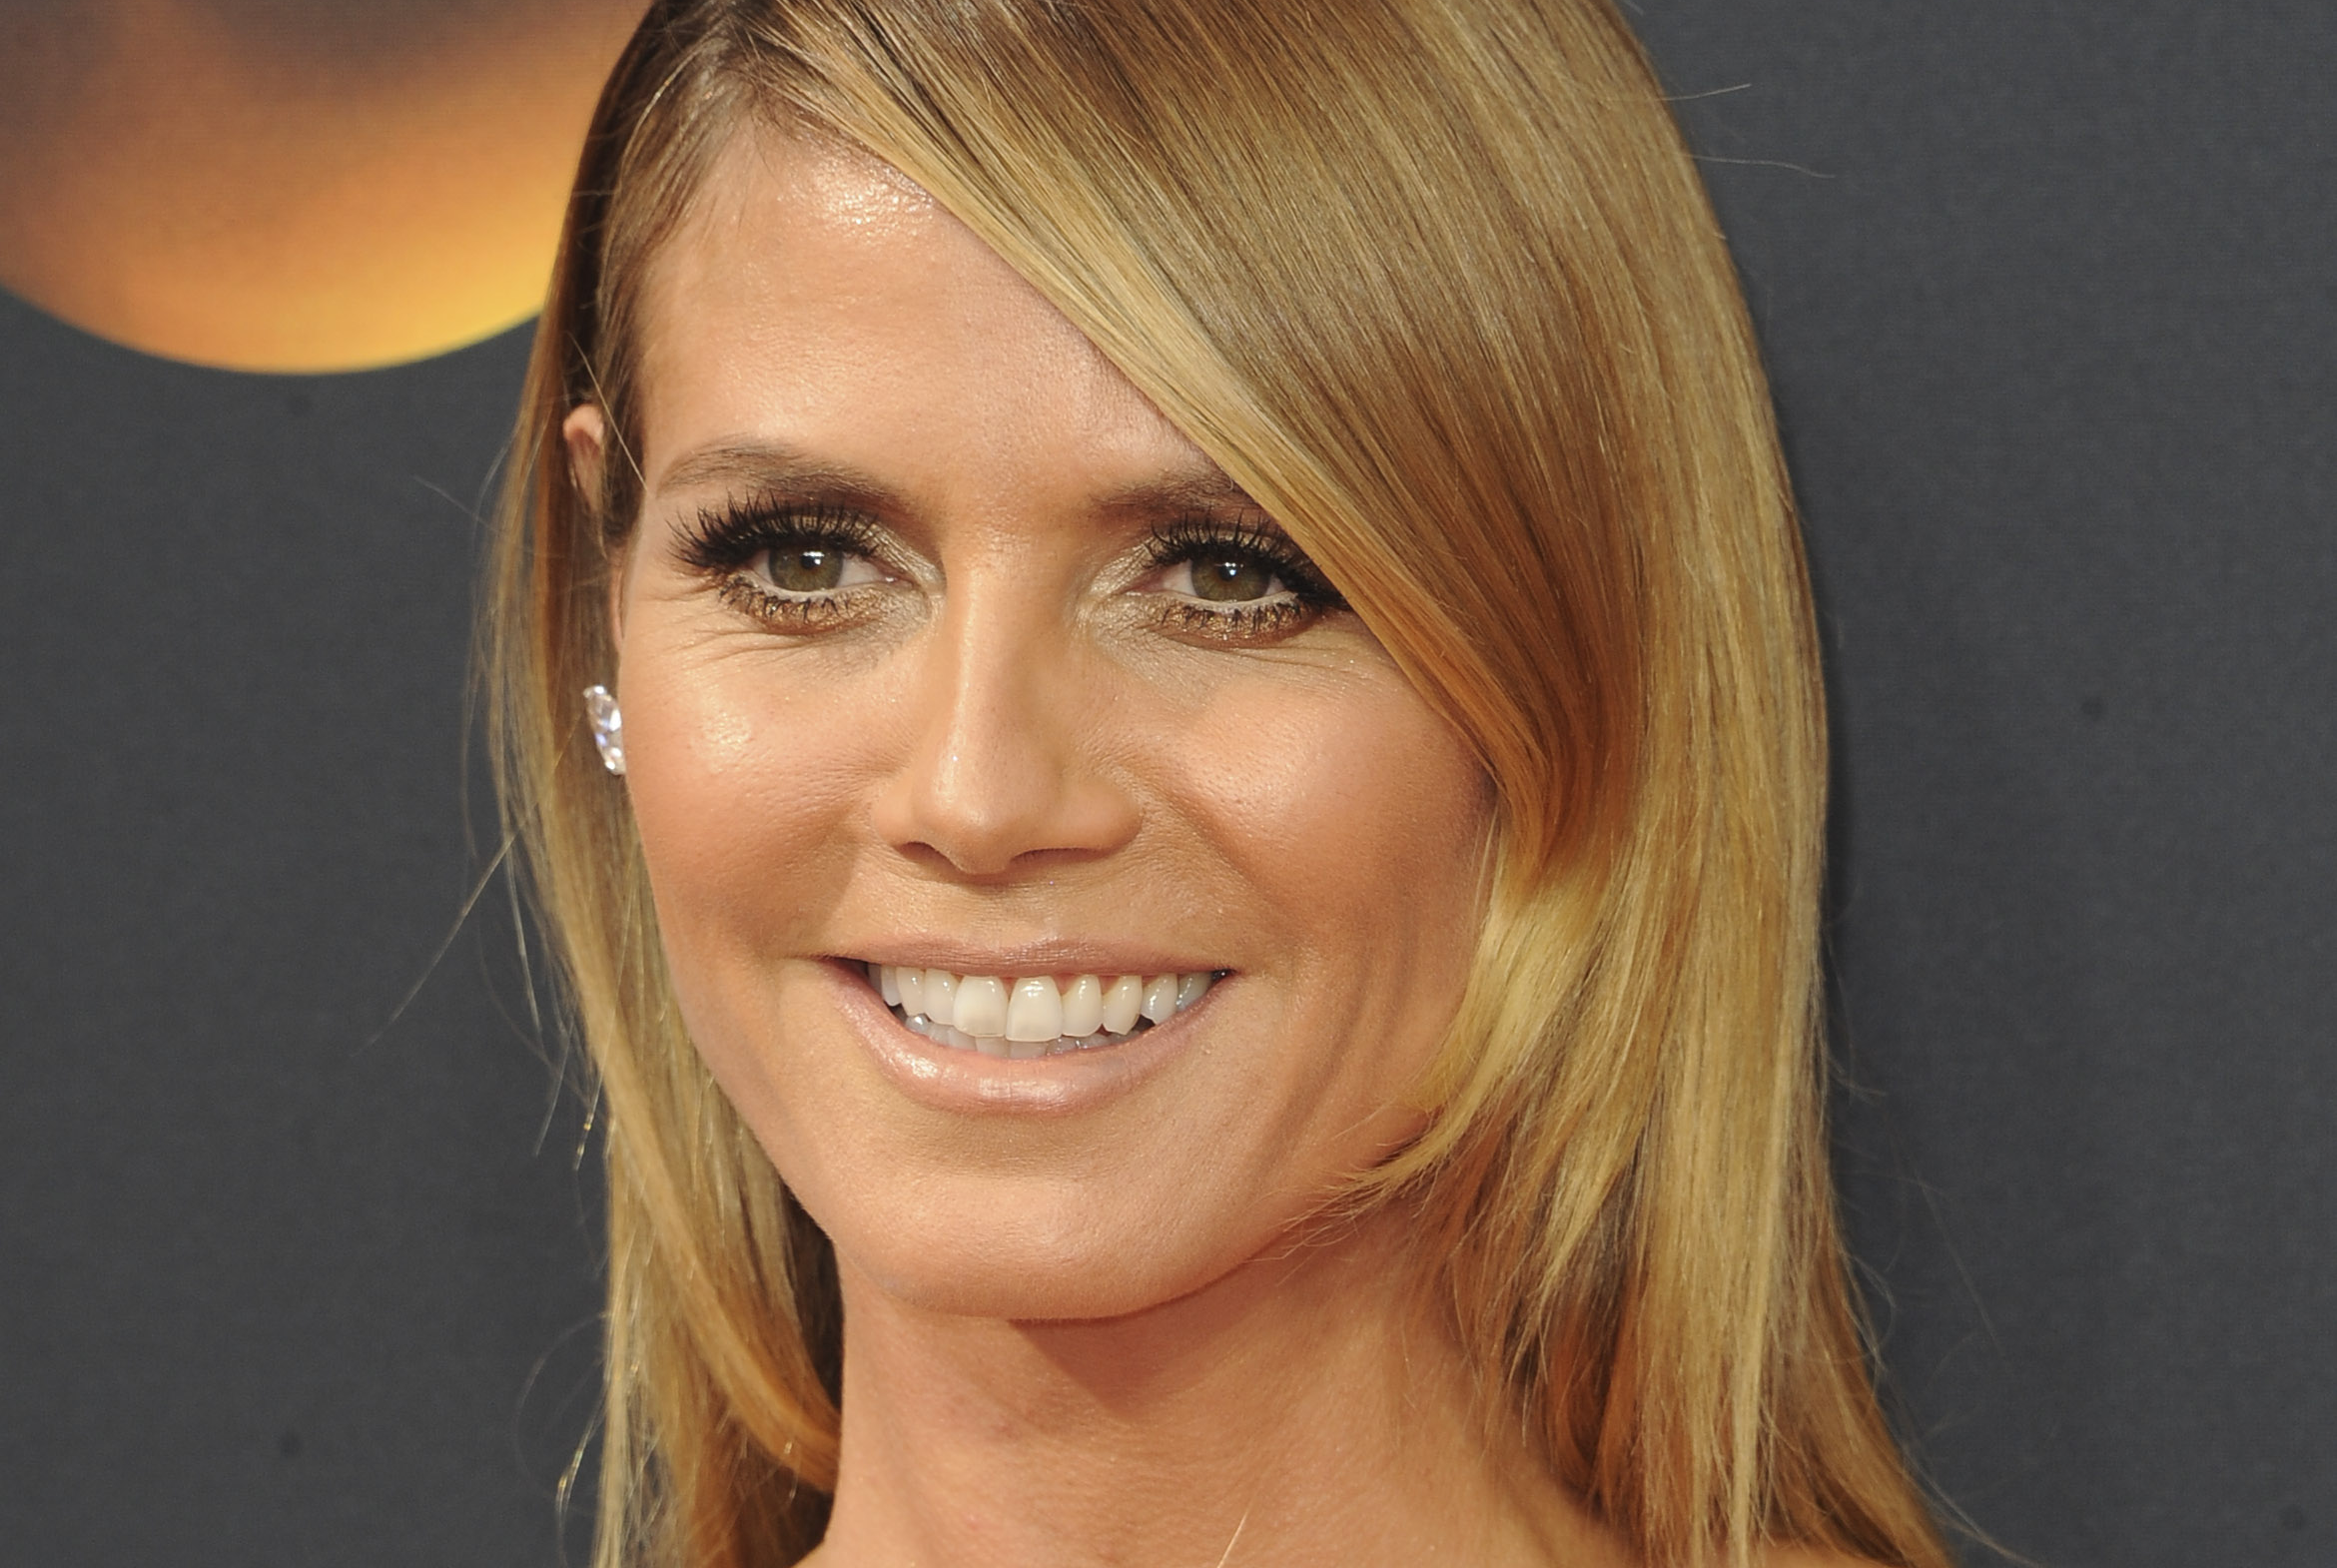 Why Is Heidi Klum Topless All the Time?